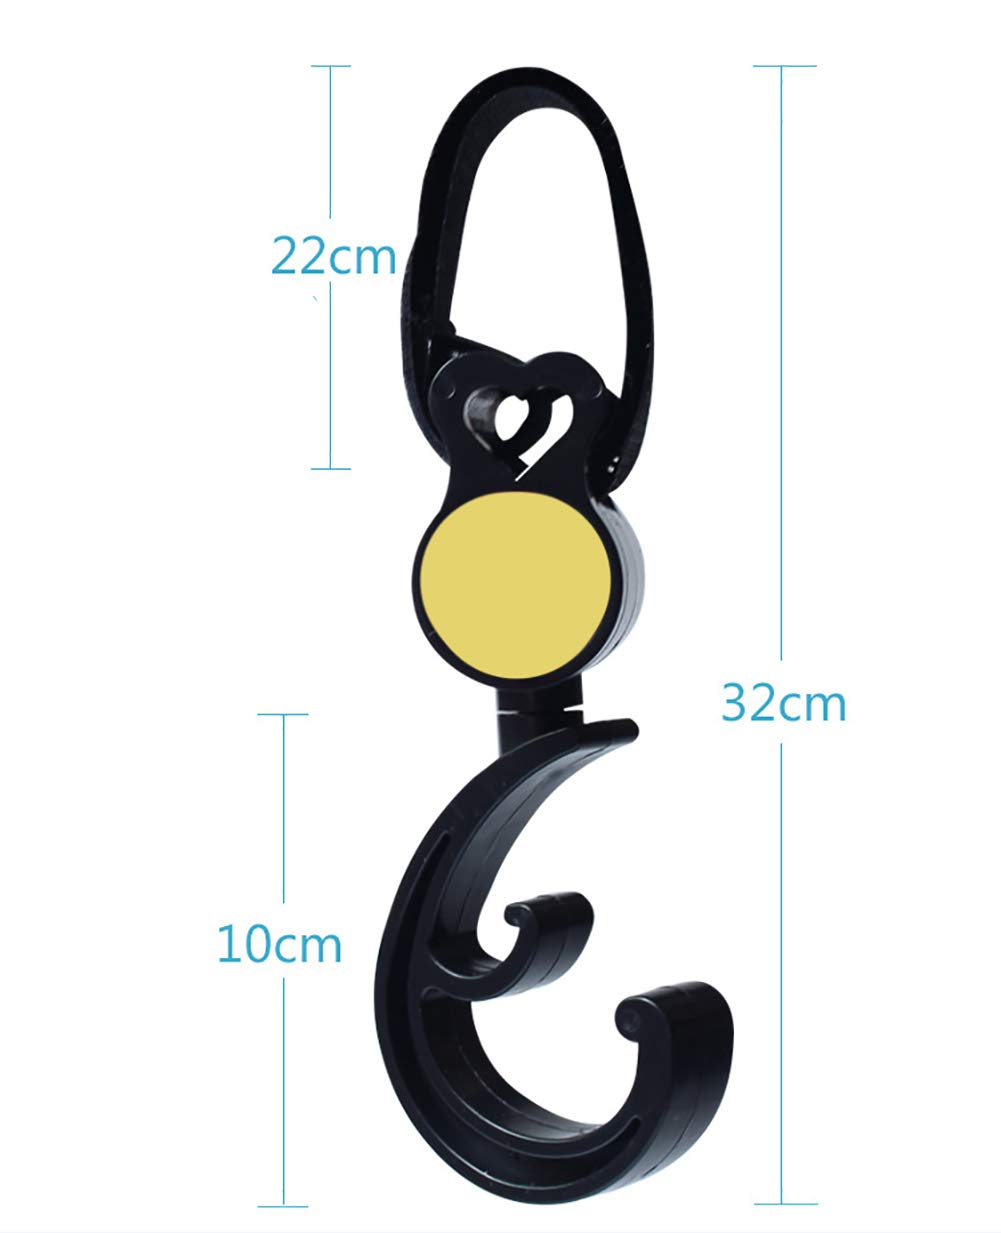 Purse 2 Pack of Multi Purpose Hooks Great Accessory for Mommy When Jogging yellow Groceries Walking or Shopping /… Clothing Stroller Hook Hanger for Baby Diaper Bags